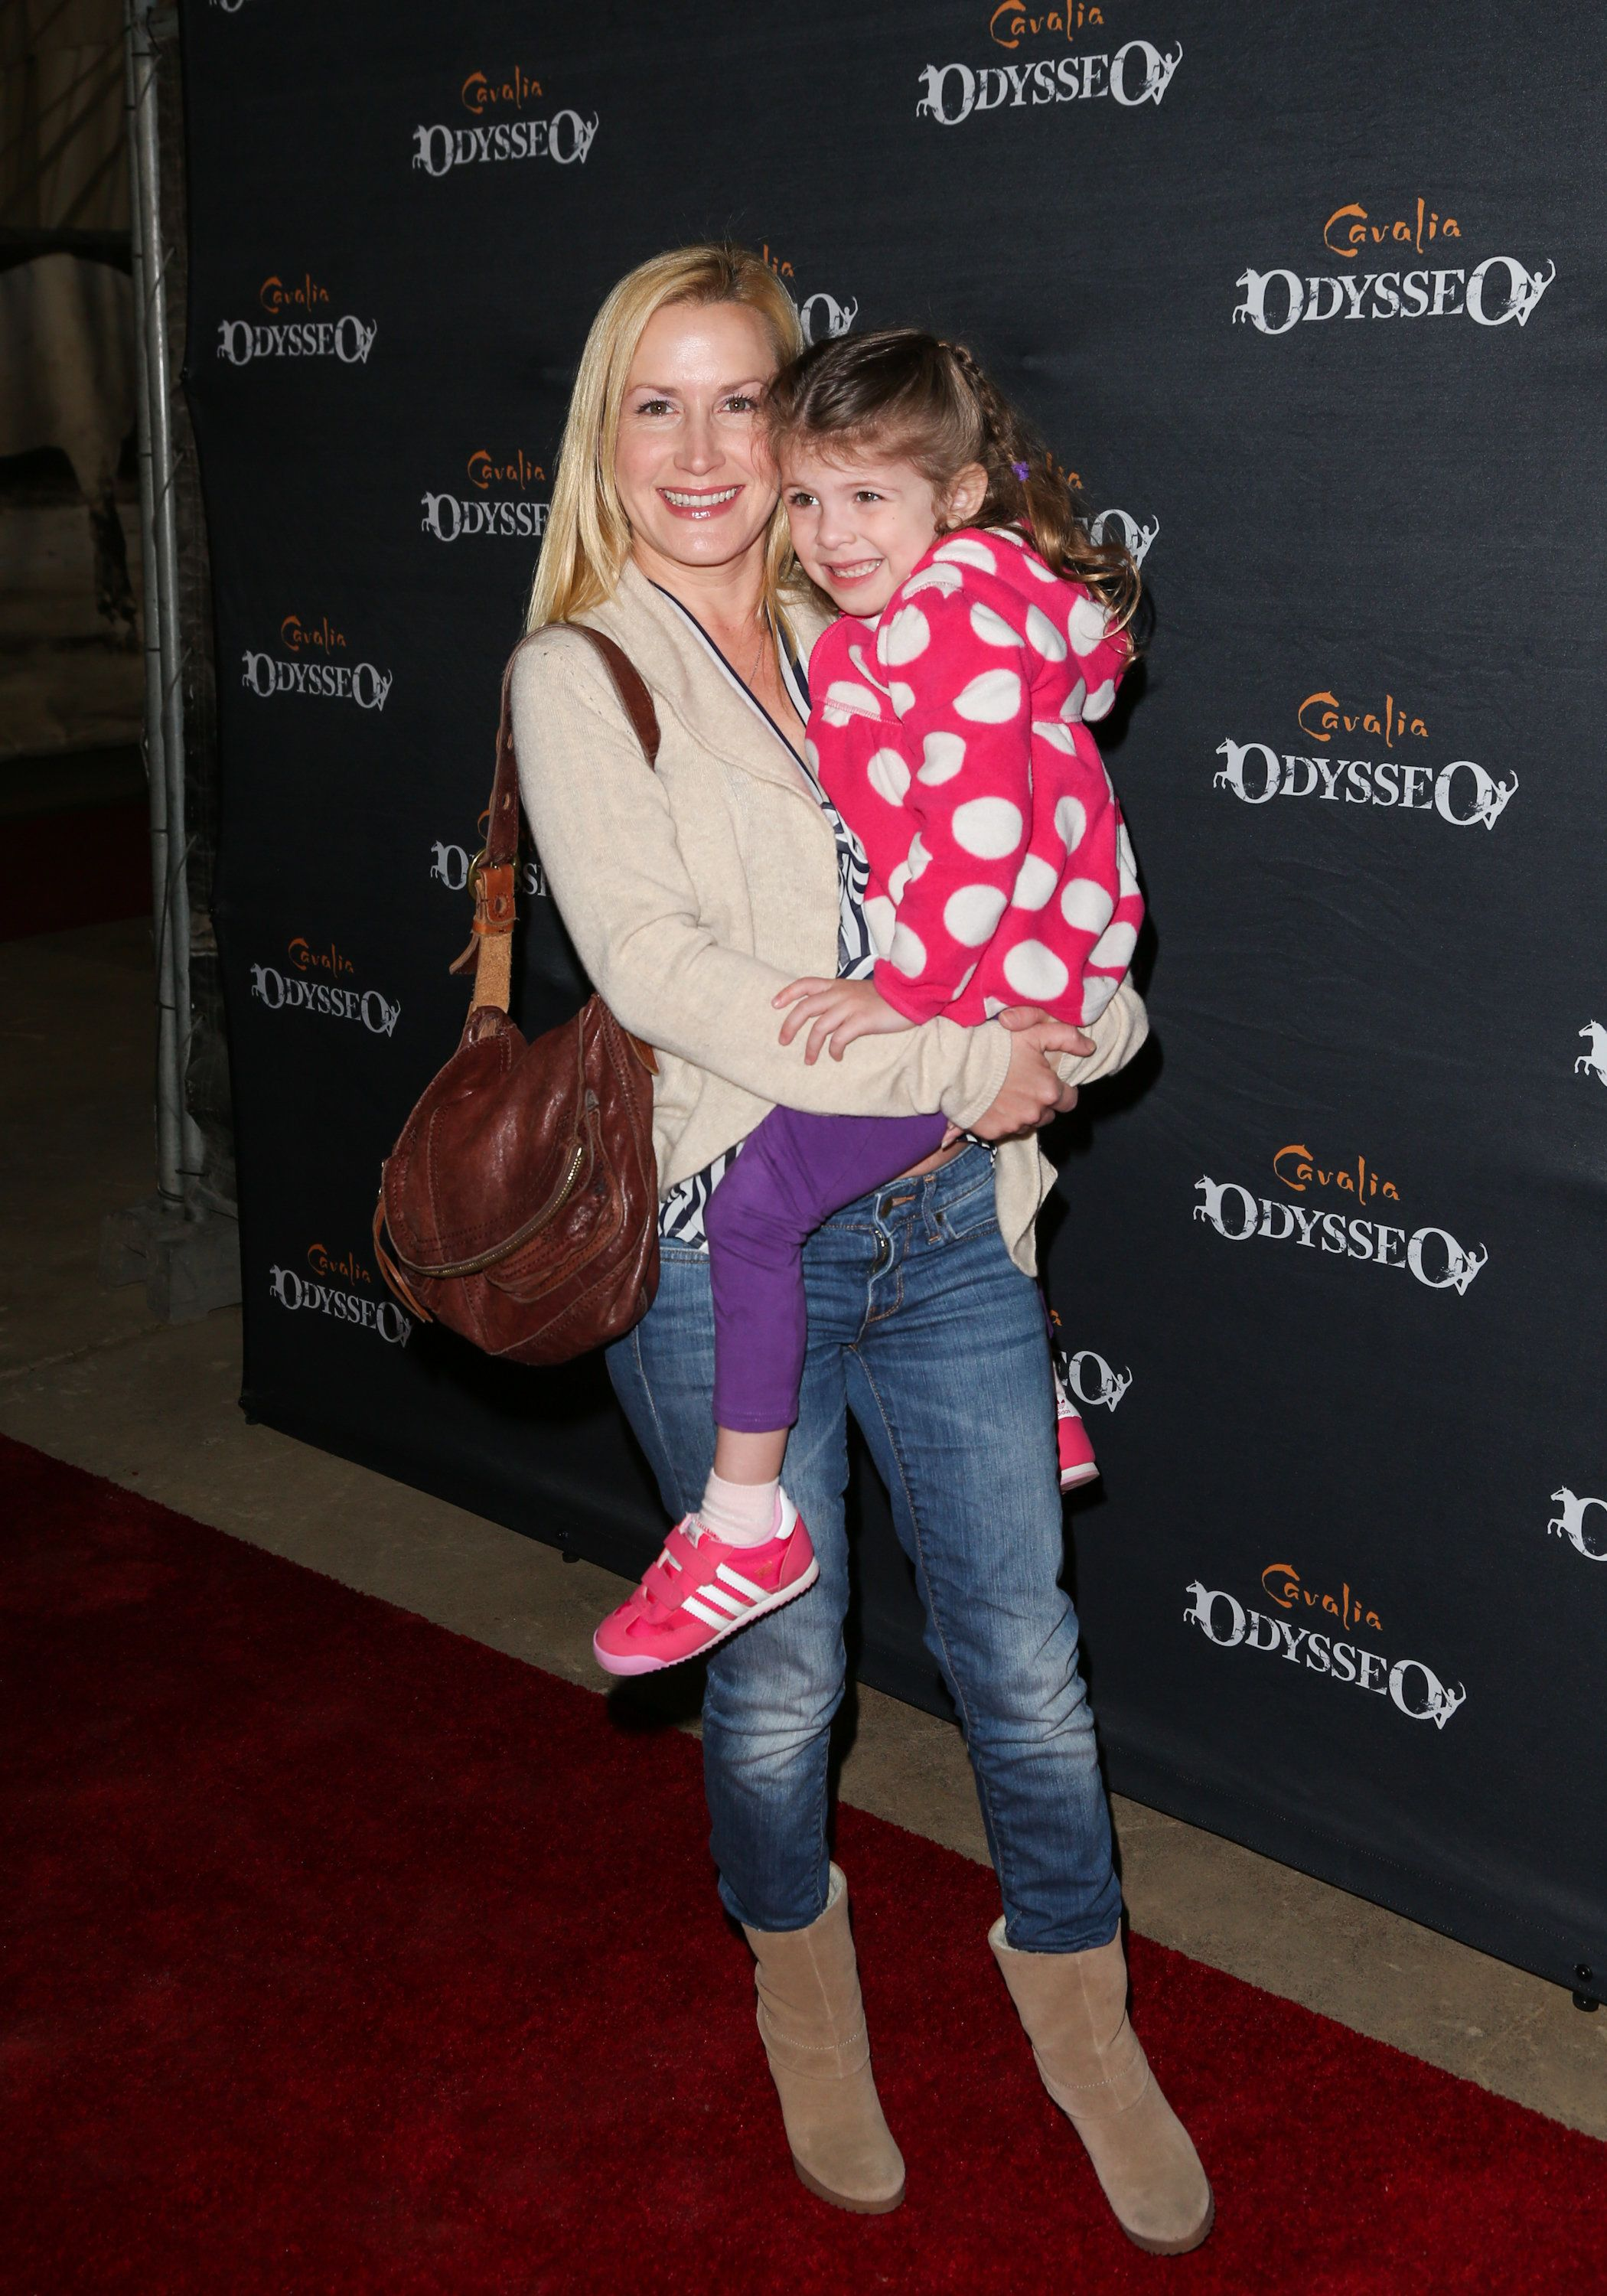 BURBANK, CA - FEBRUARY 27:  Actress Angela Kinsey (L) and her daughter Isabel Ruby Lieberstein (R) attend the opening night for Cavalia's 'Odysseo' at the Cavalia's Odysseo Village on February 27, 2013 in Burbank, California.  (Photo by Paul Archuleta/FilmMagic)